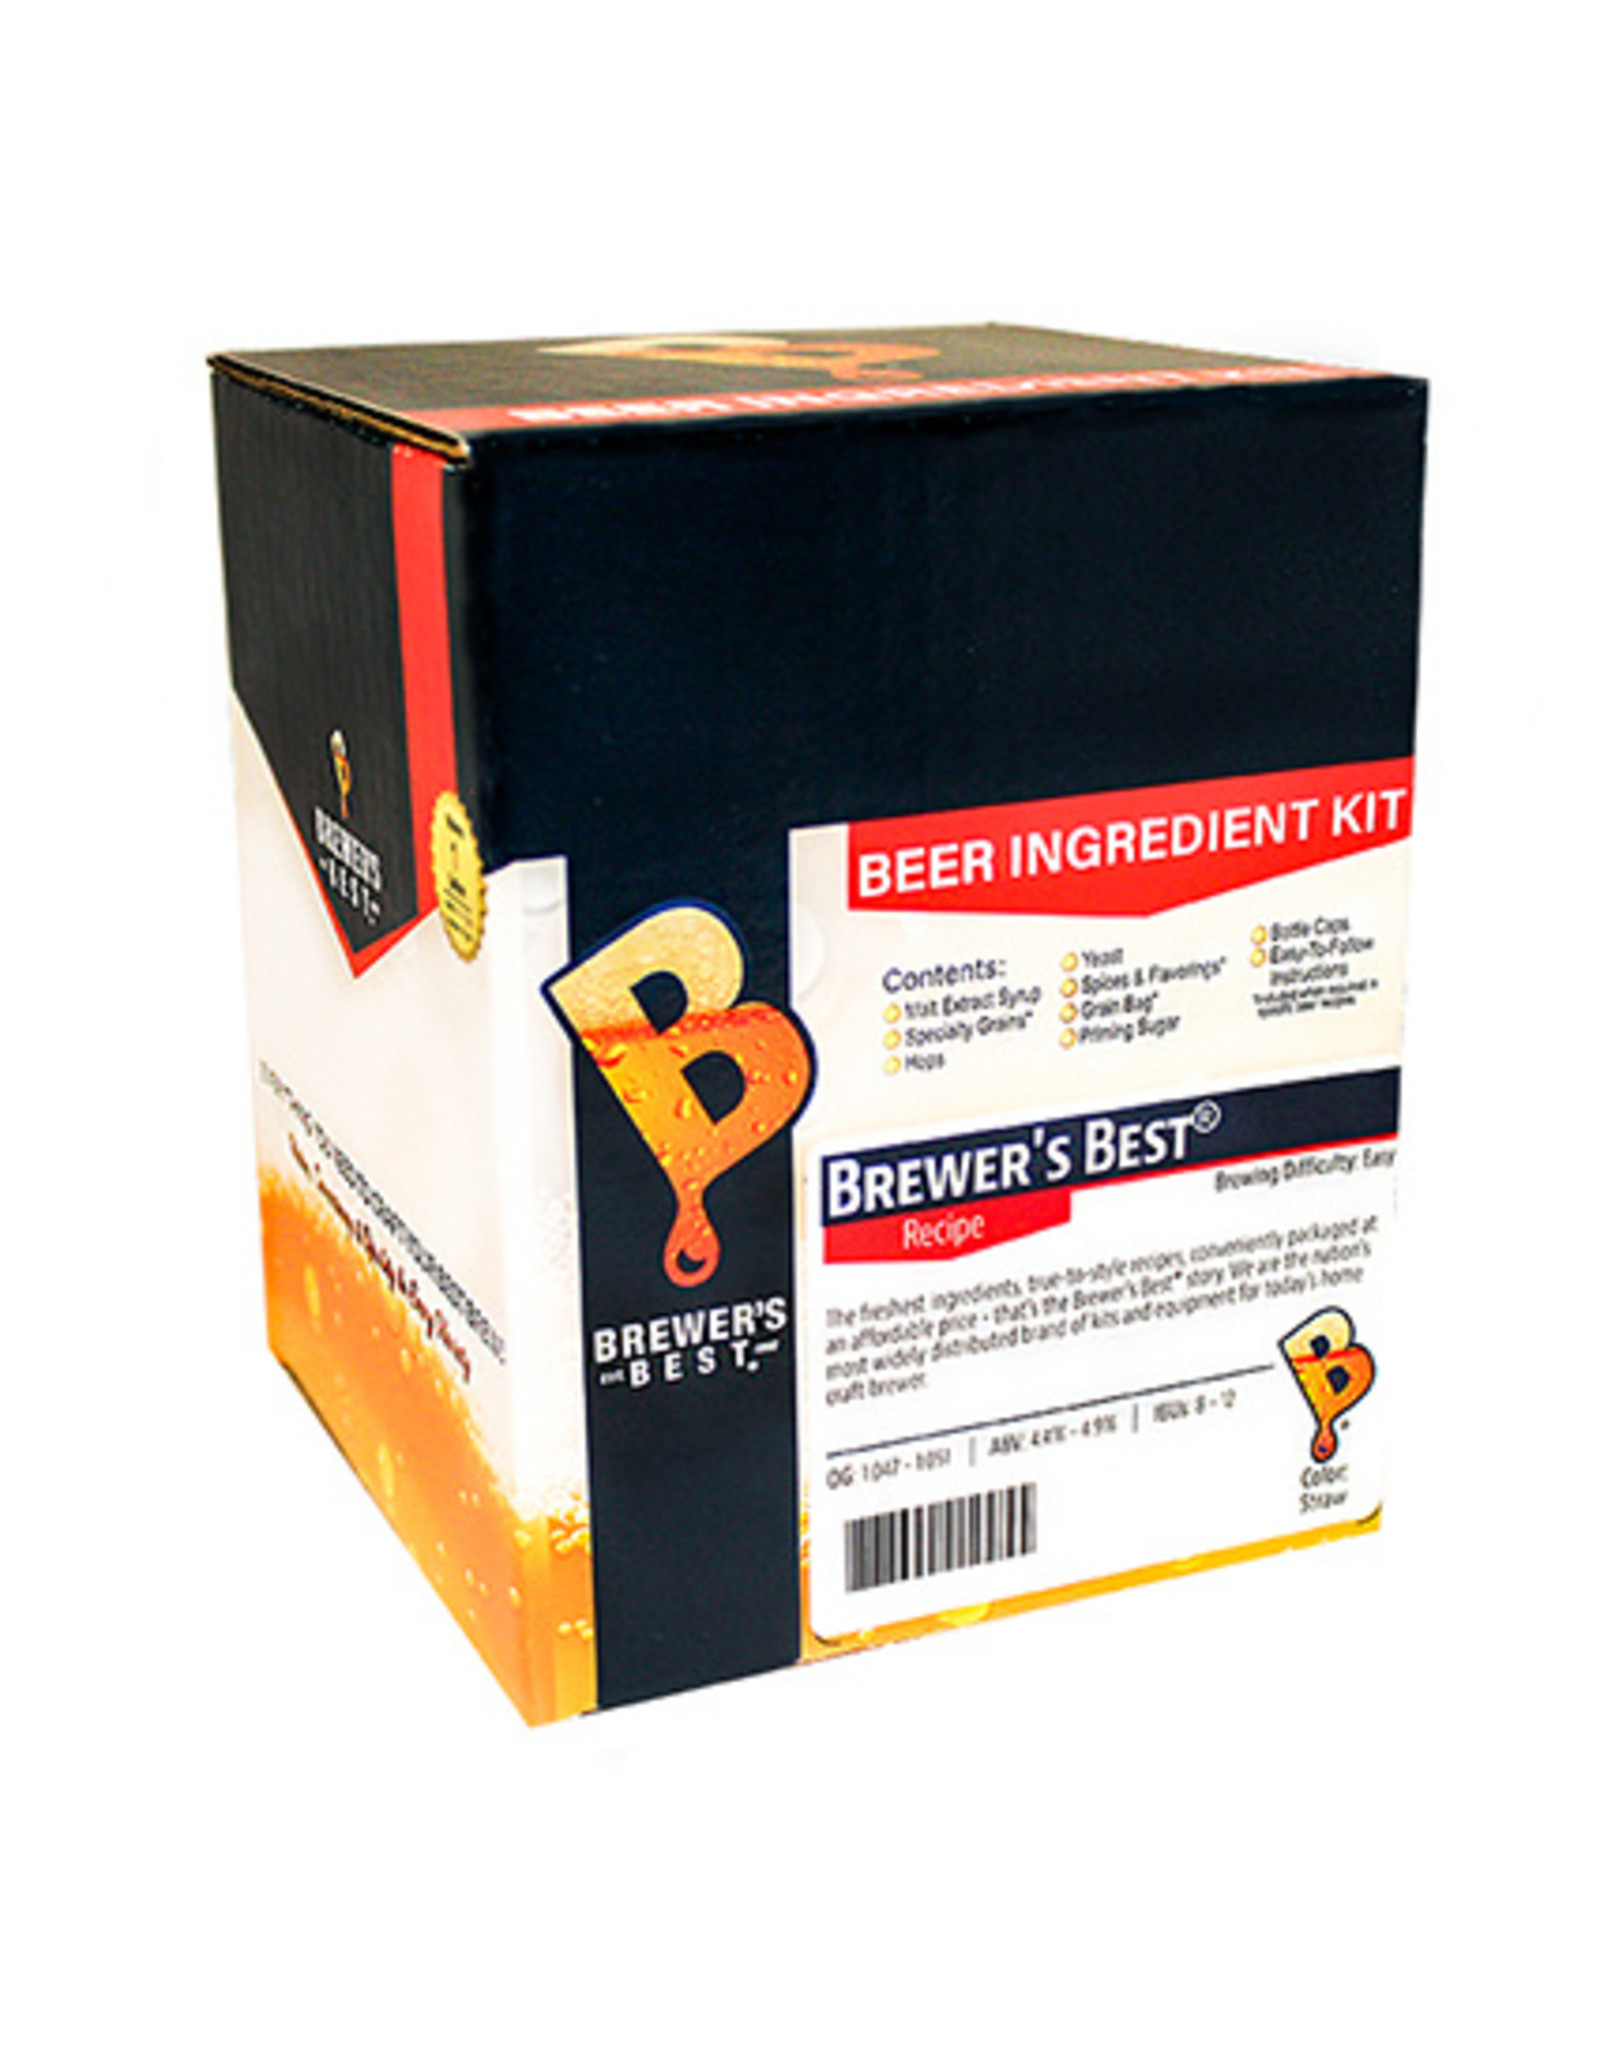 Brewers Best Brewer's Best 1 Gallon kit - IPA